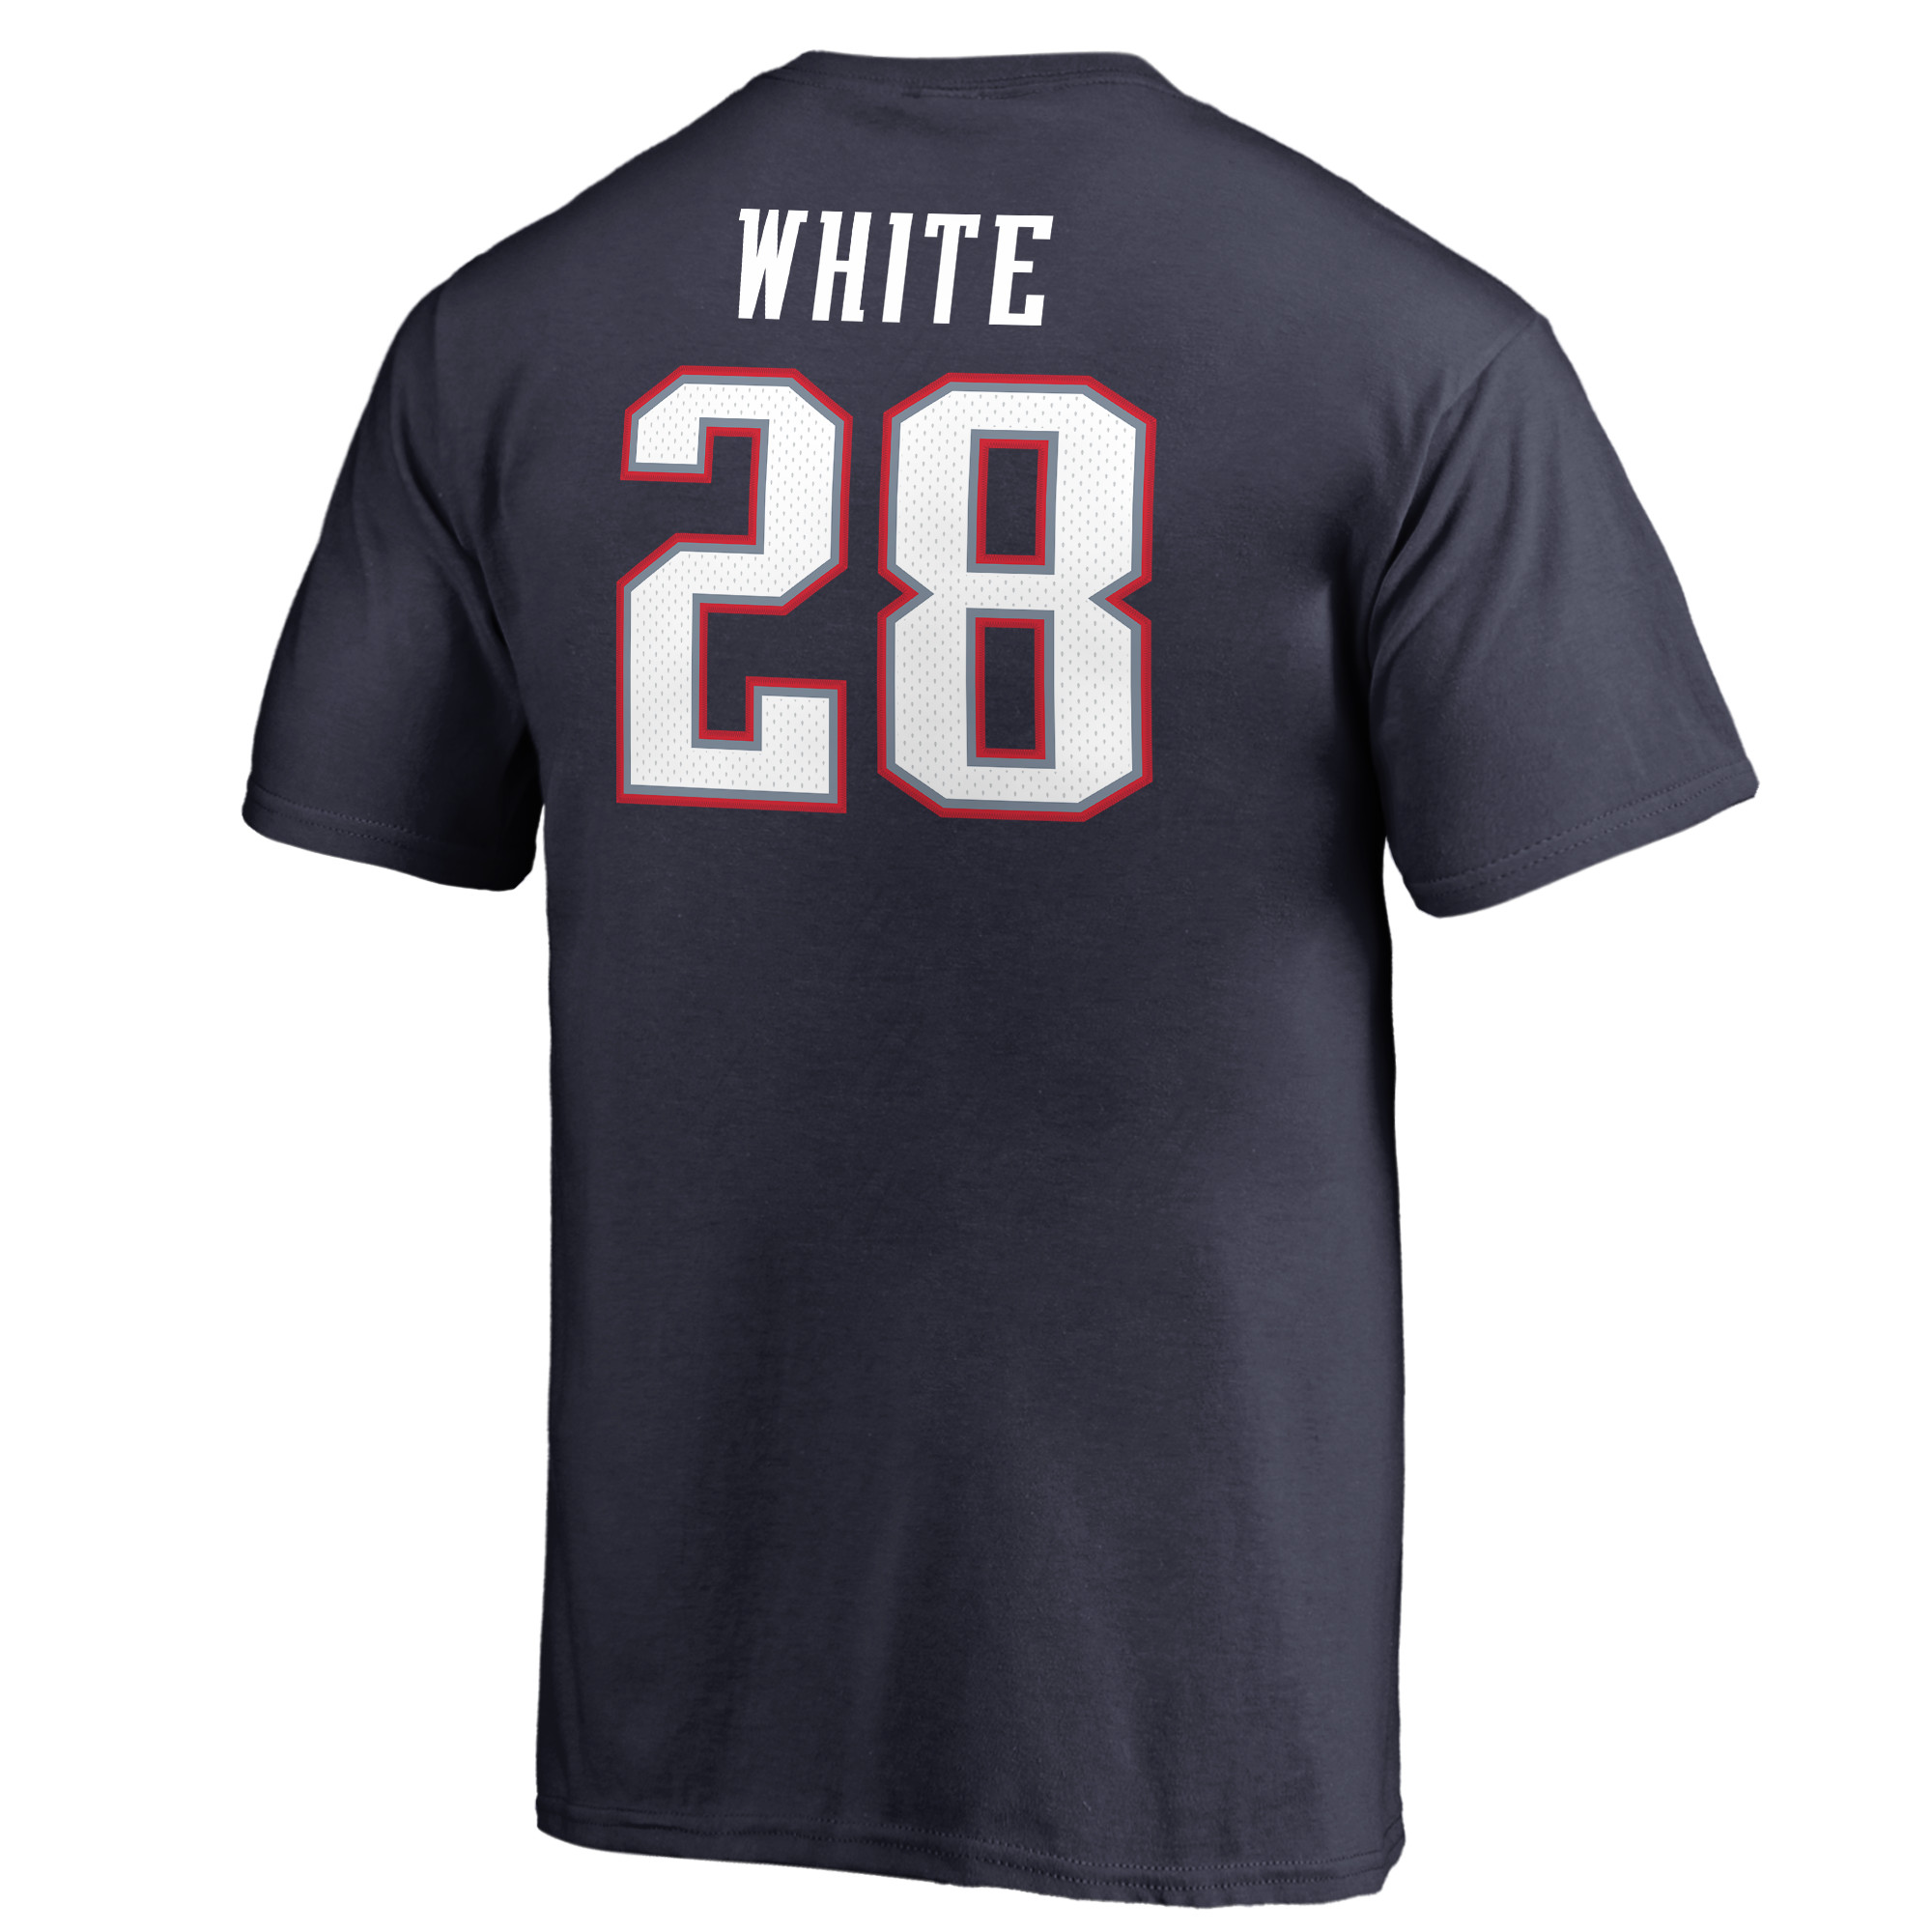 James White New England Patriots NFL Pro Line by Fanatics Branded Youth  Authentic Stack Name   Number T-Shirt - Navy - Walmart.com 3087123b9